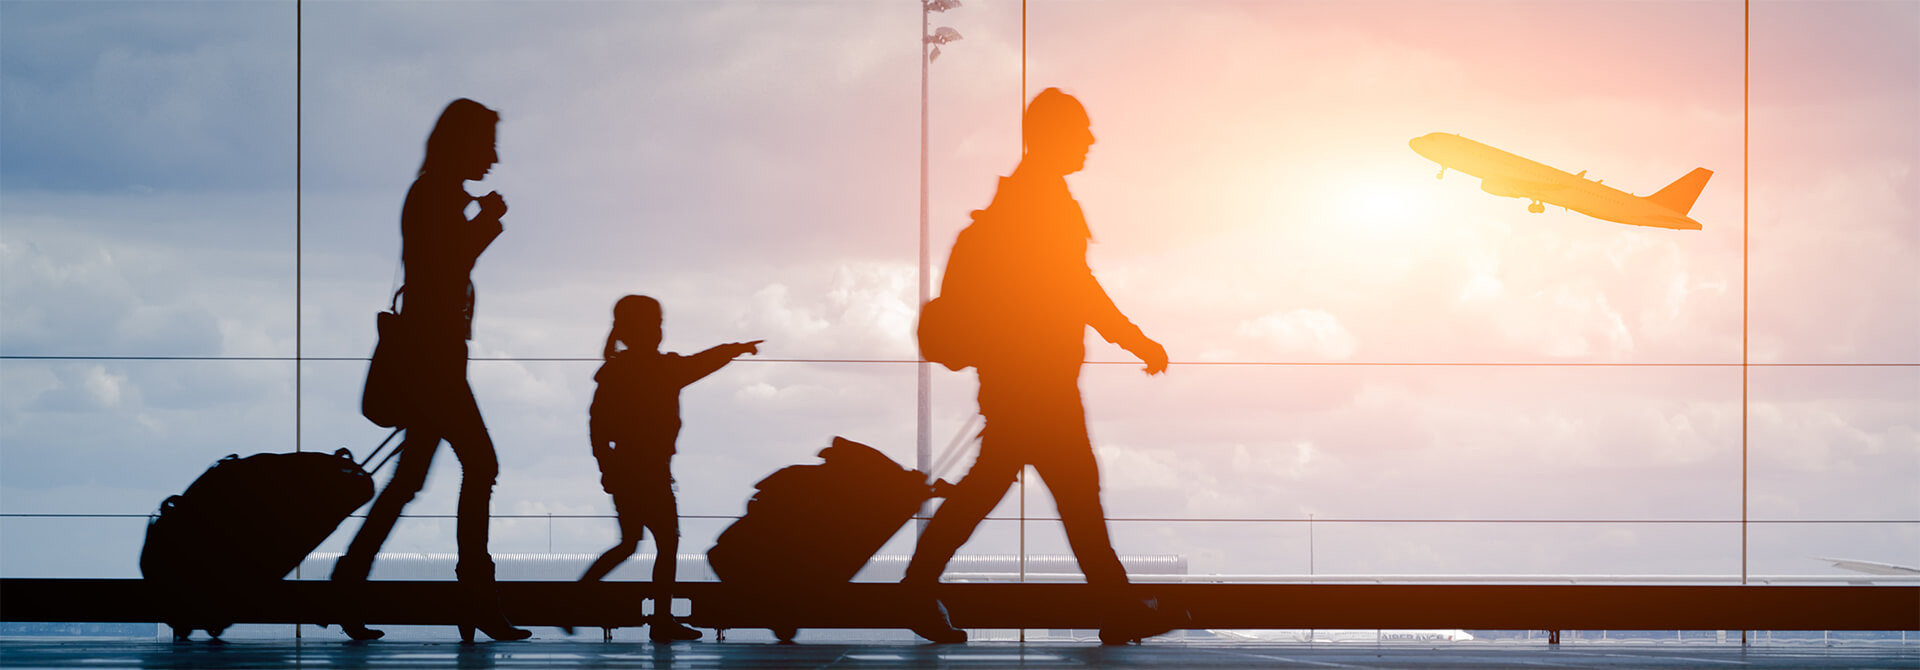 If you are traveling to or from Costa Rica in the coming days, best is to check the status of your flight before heading off to the airport